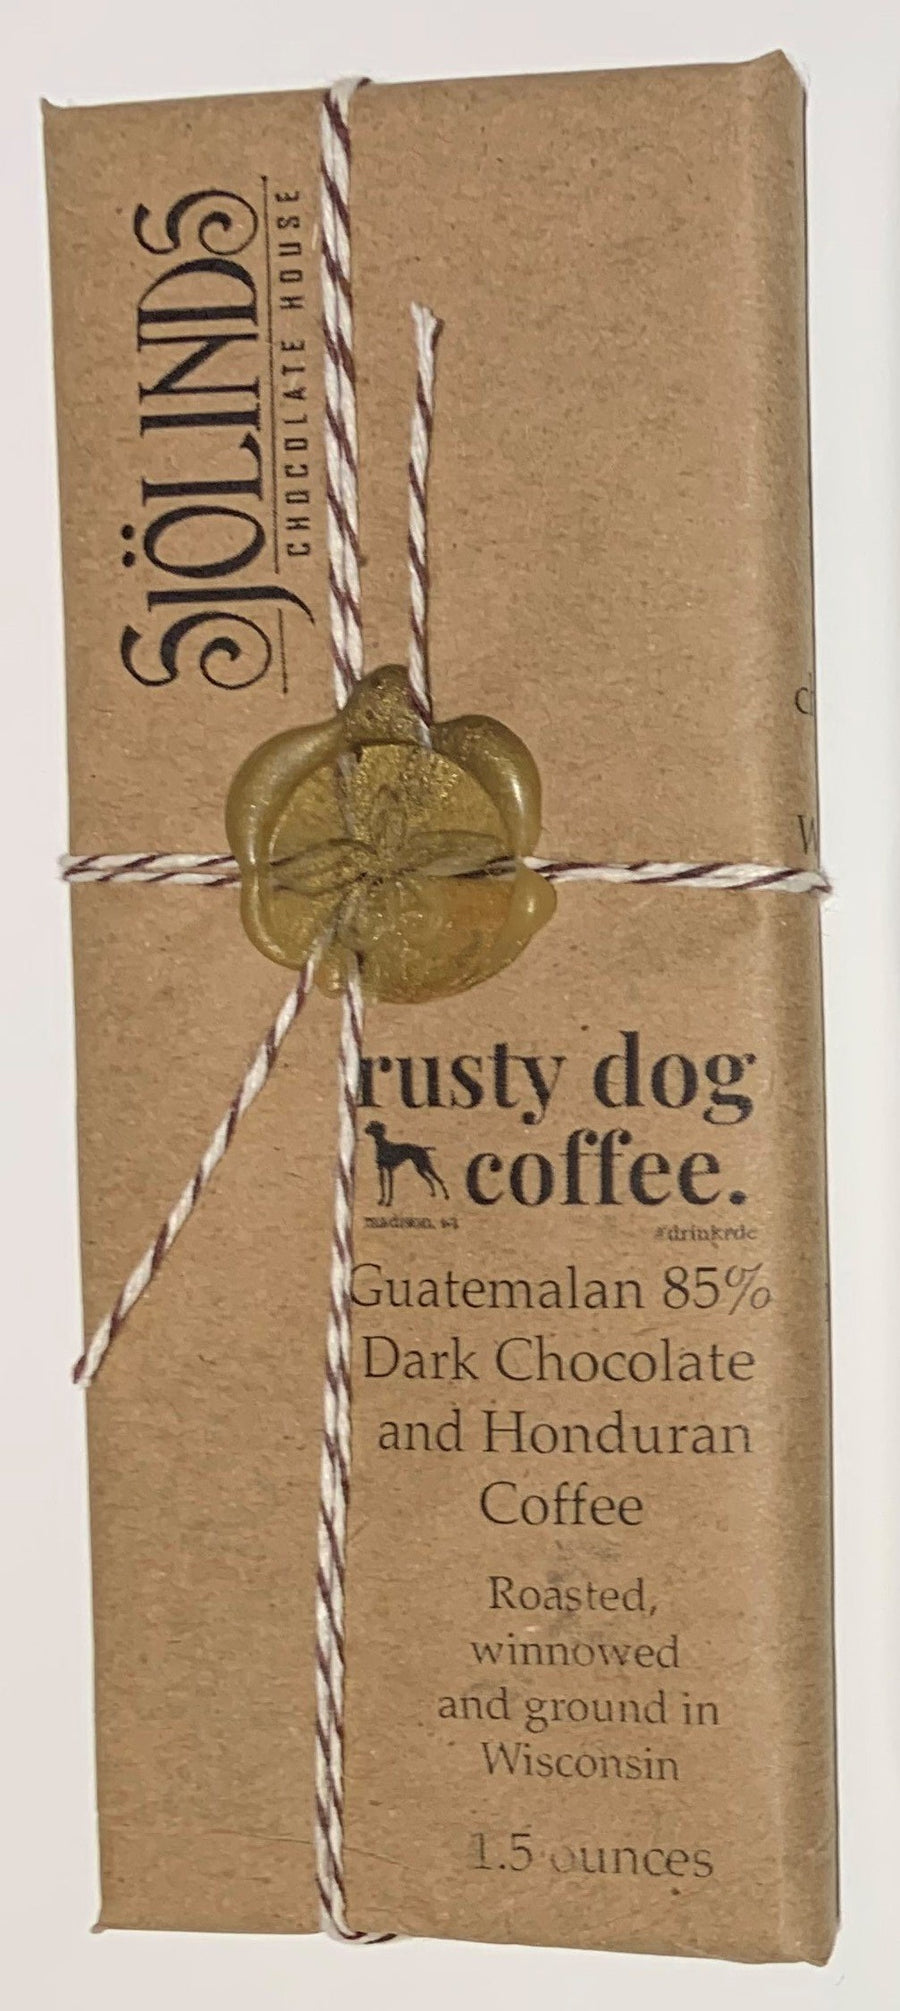 Sjölinds-Coffee-Chocolate-Bars-Rusty-Dog-Coffee-Guatemala